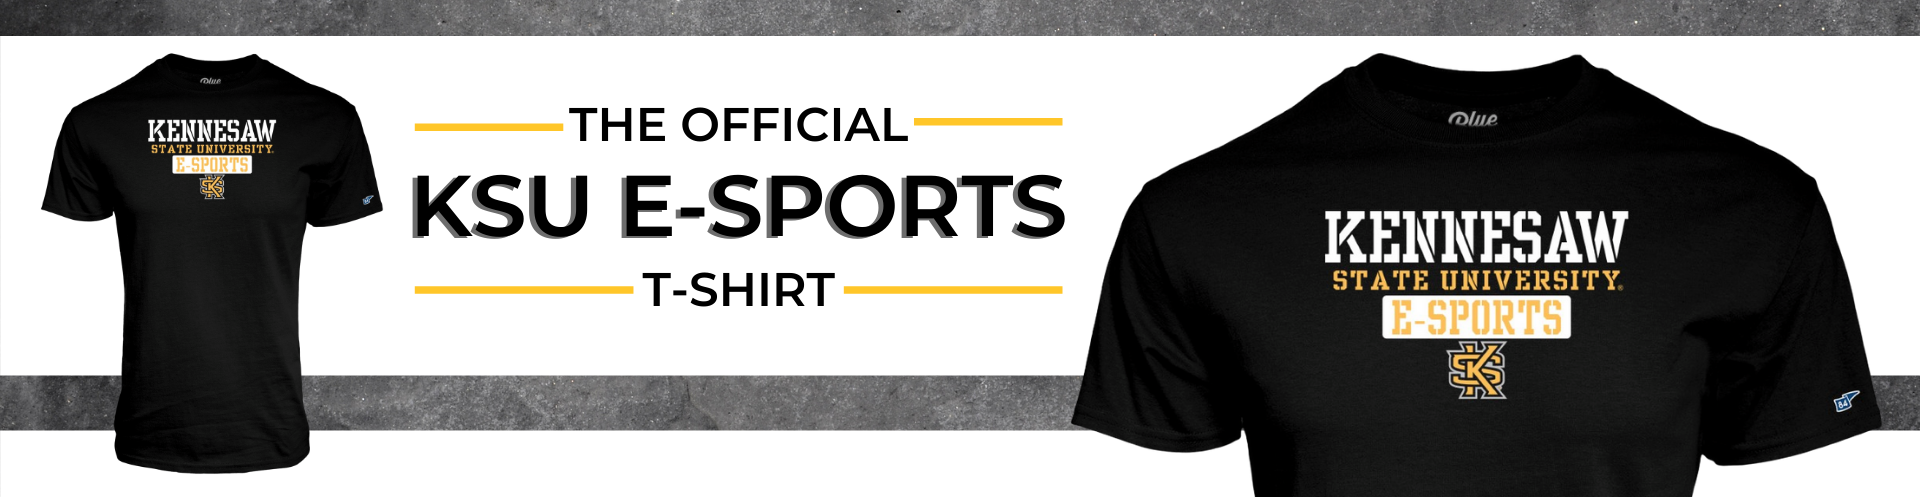 Get Your Official E-Sports T-Shirt